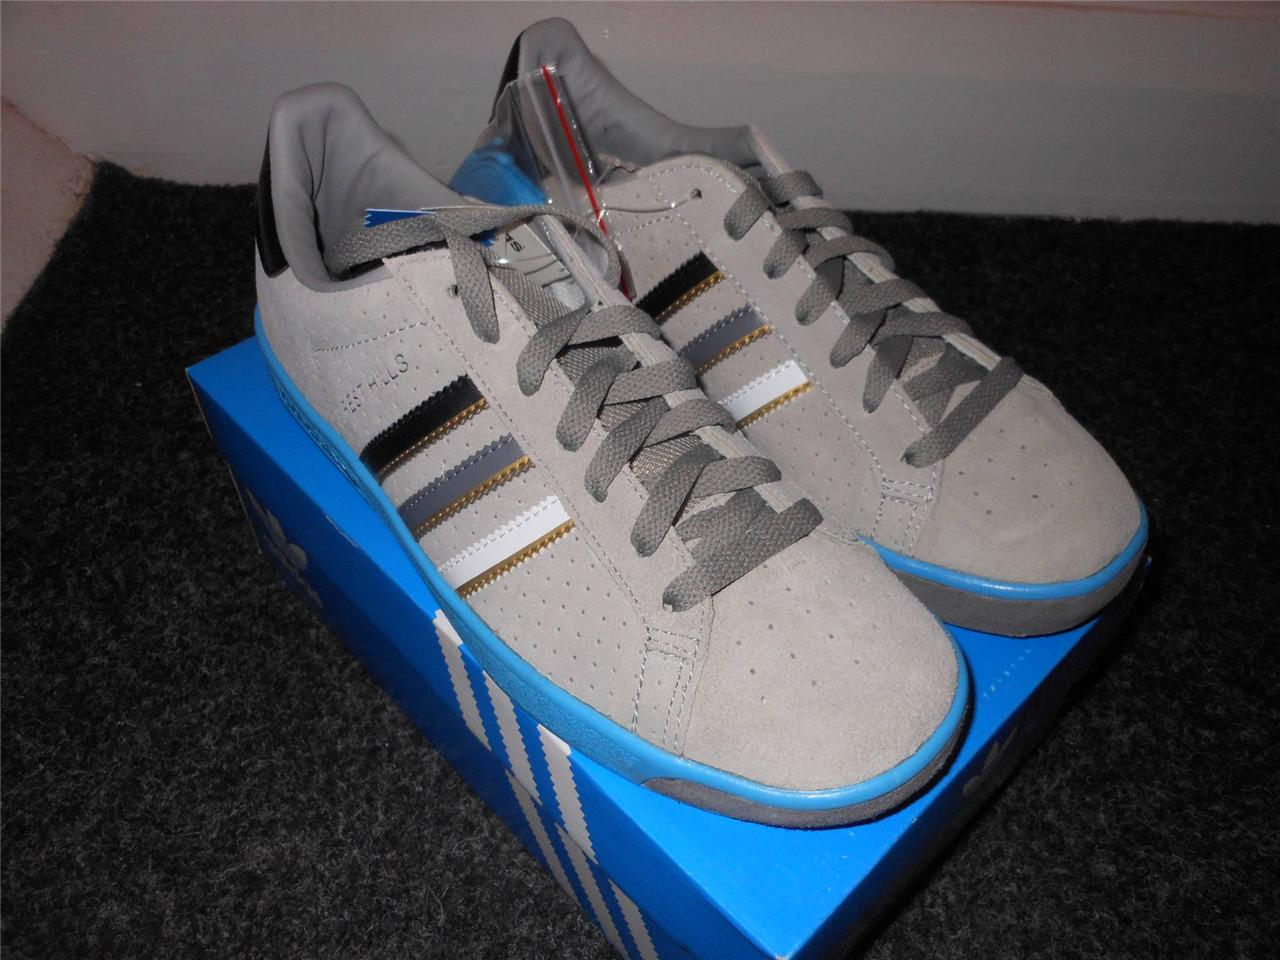 Mens-white-or-grey-adidas-FOREST-HILLS-trainer-NEW-amp-BOXED-size8-9-amp-10-IDEAL-GIFT